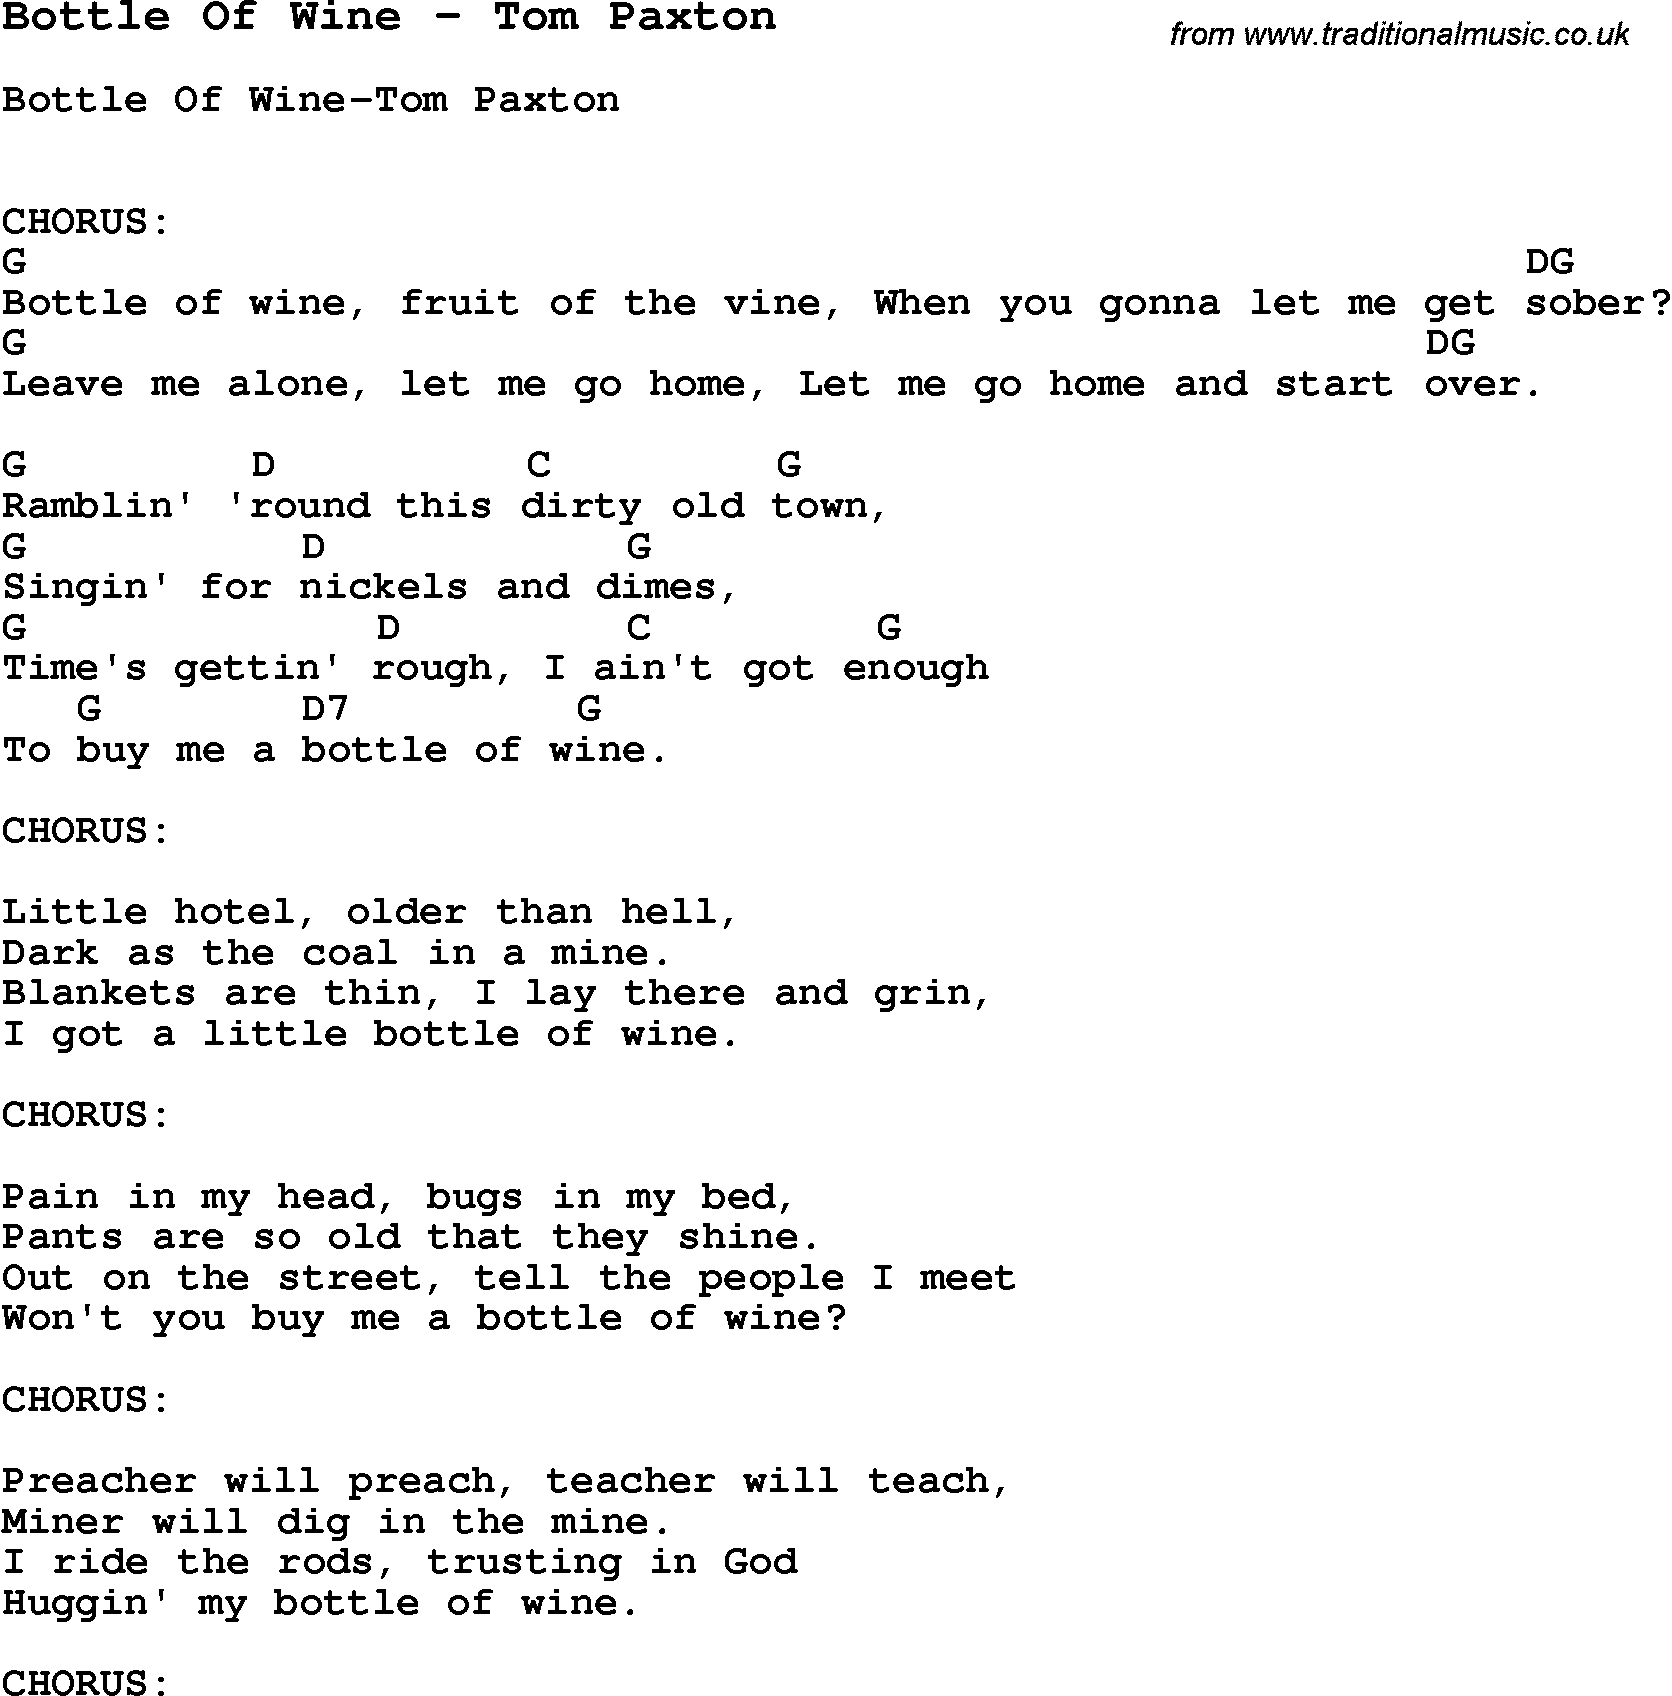 Song bottle of wine by tom paxton song lyric for vocal song bottle of wine by tom paxton with lyrics for vocal performance and accompaniment chords hexwebz Image collections